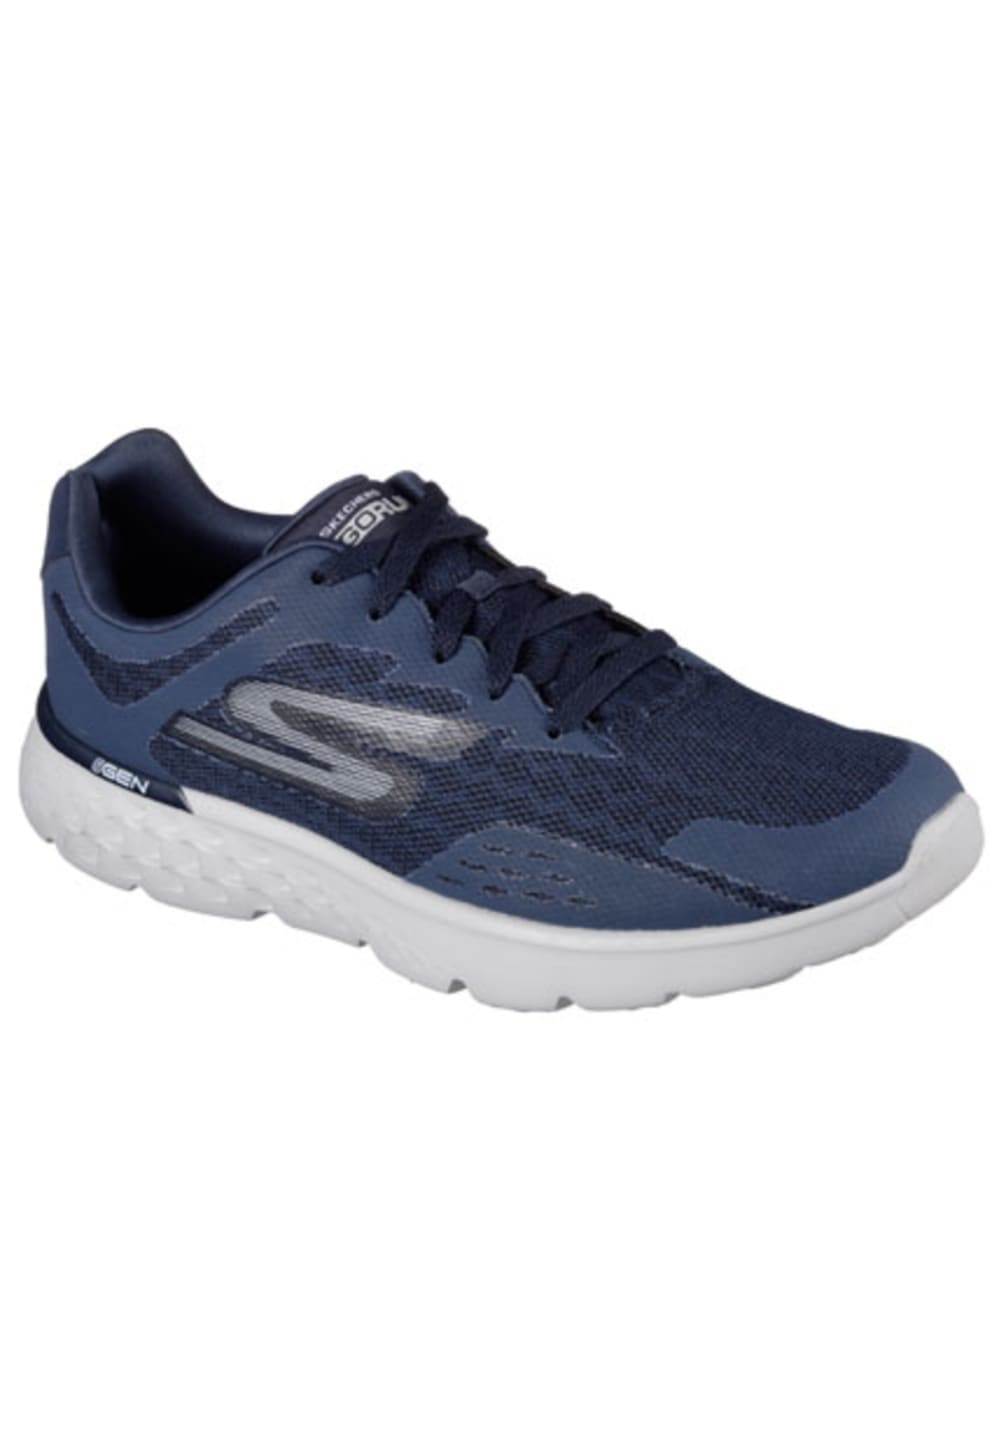 e3718e9f341d ... Skechers Go Run 400 - Disperse - Running shoes for Men - Blue. Back to  Overview. -50%